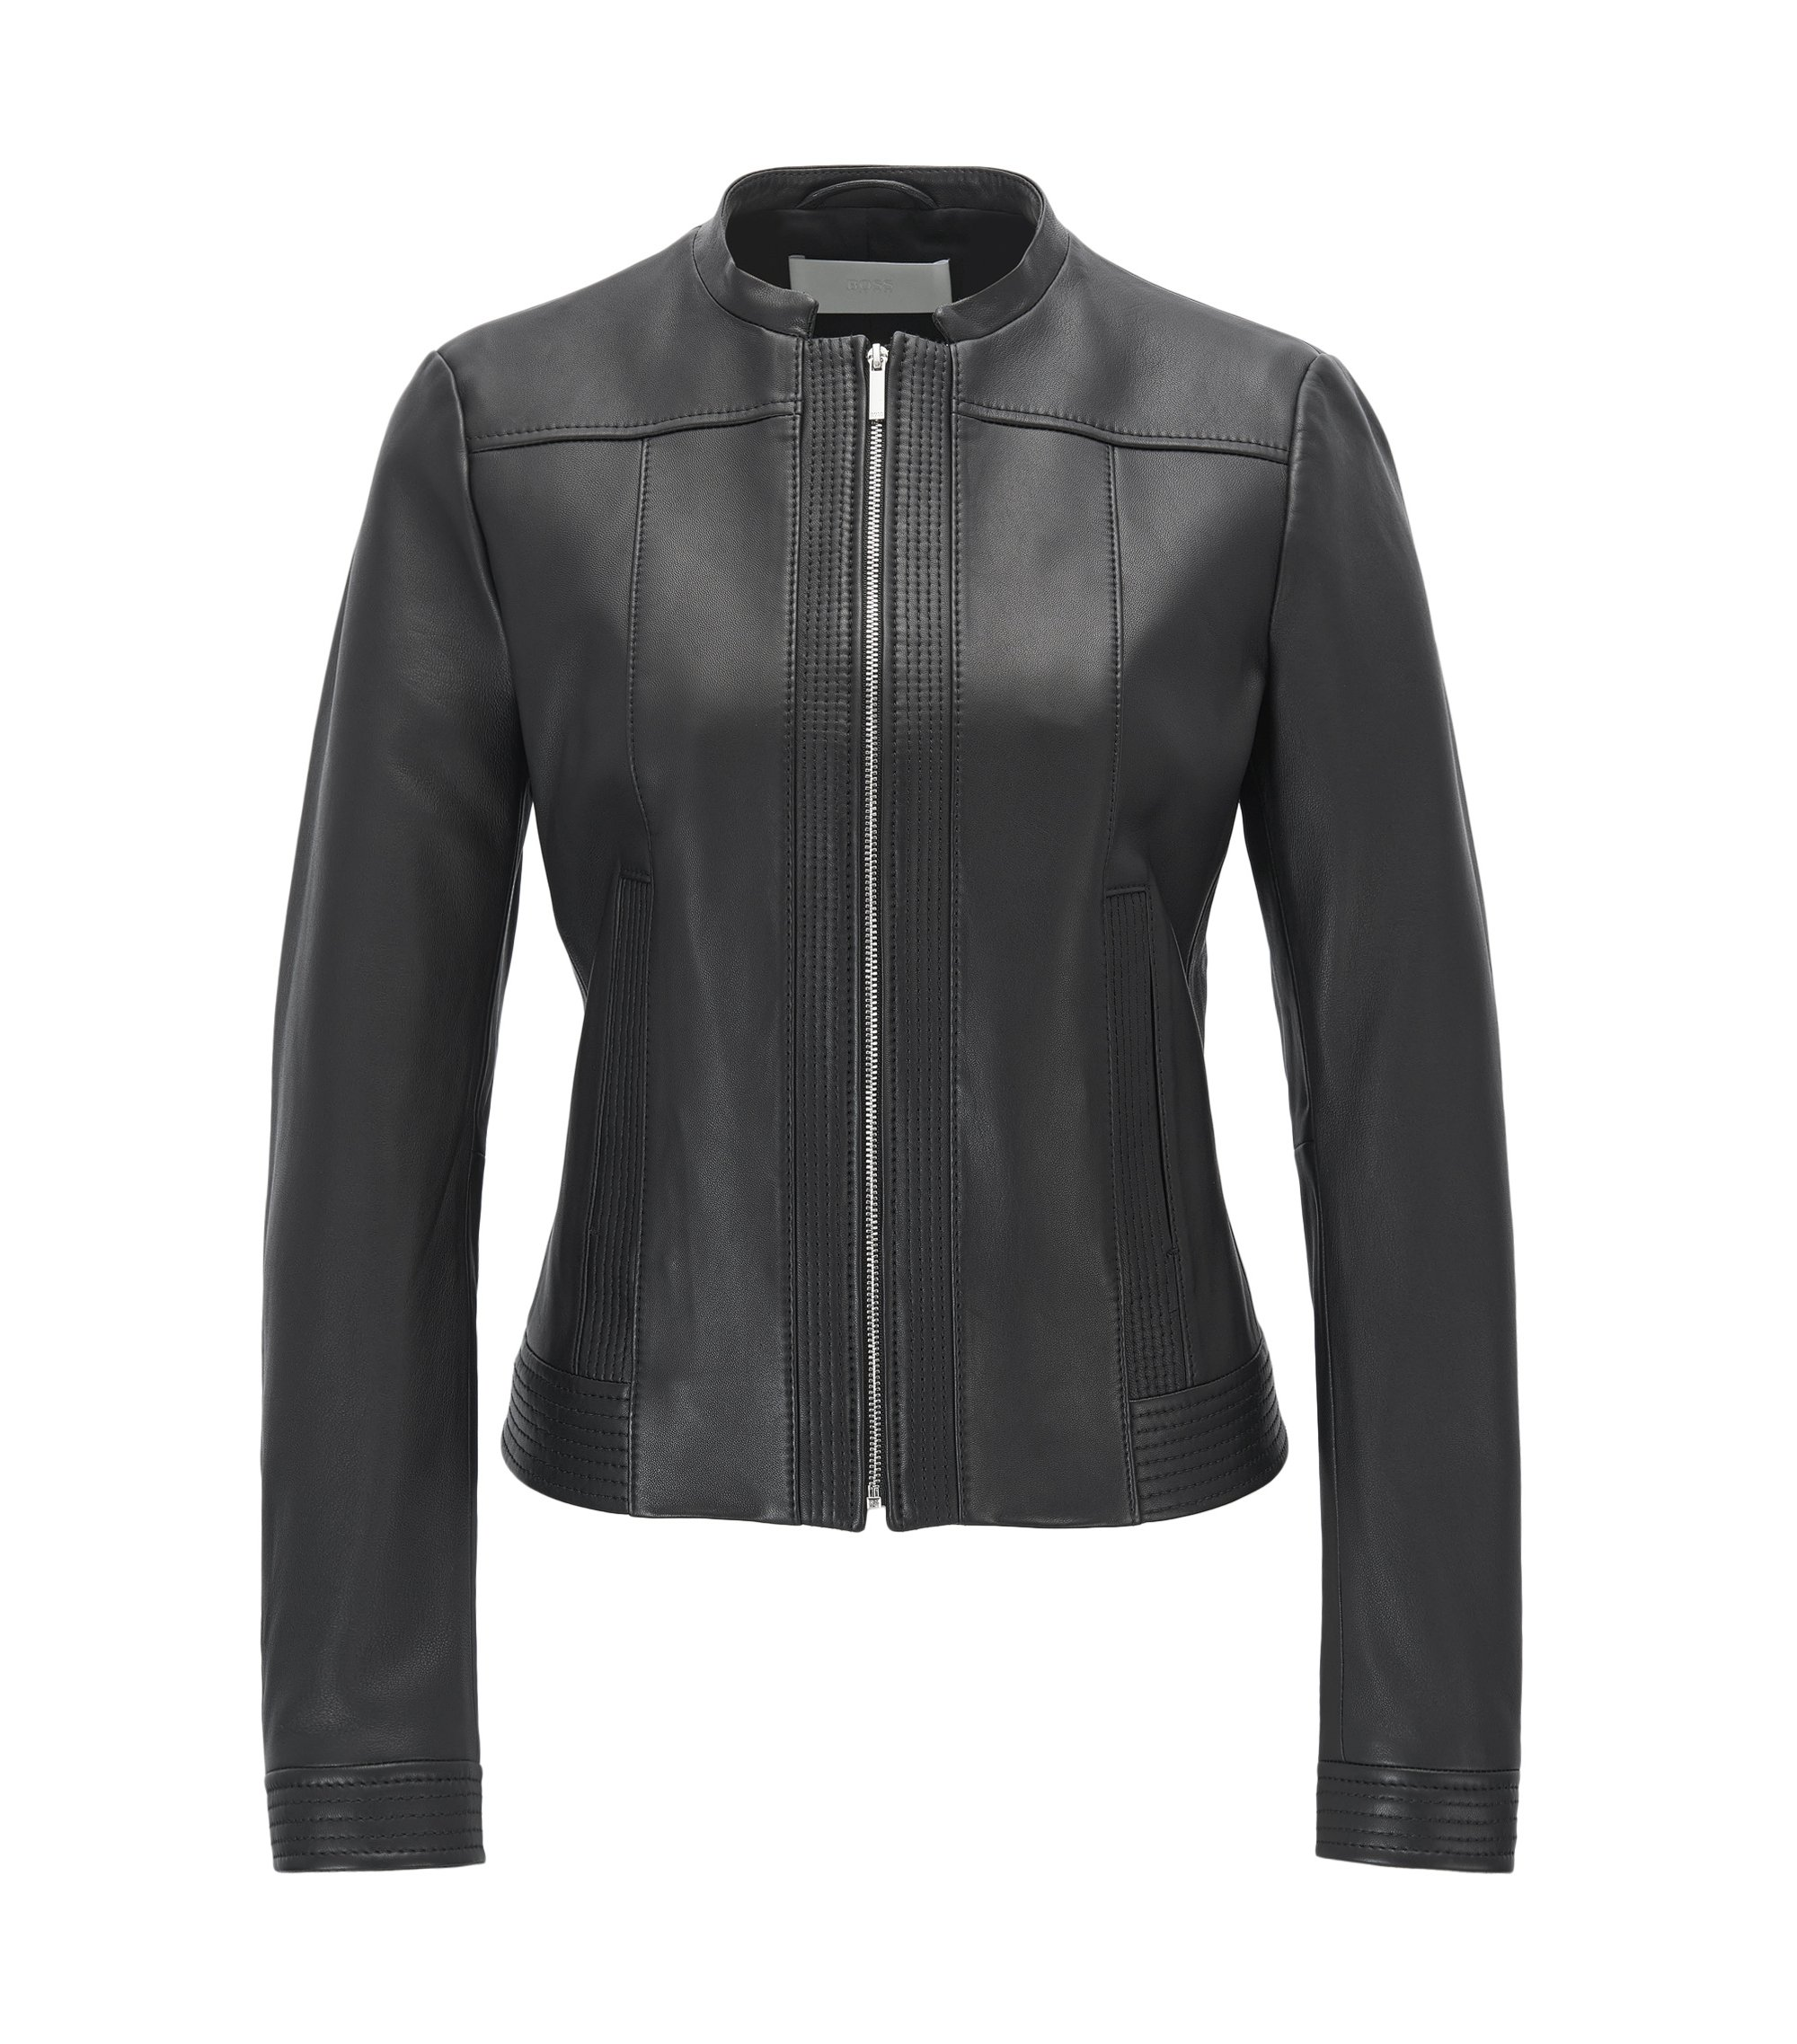 Regular-fit jacket in nappa lambskin, Black